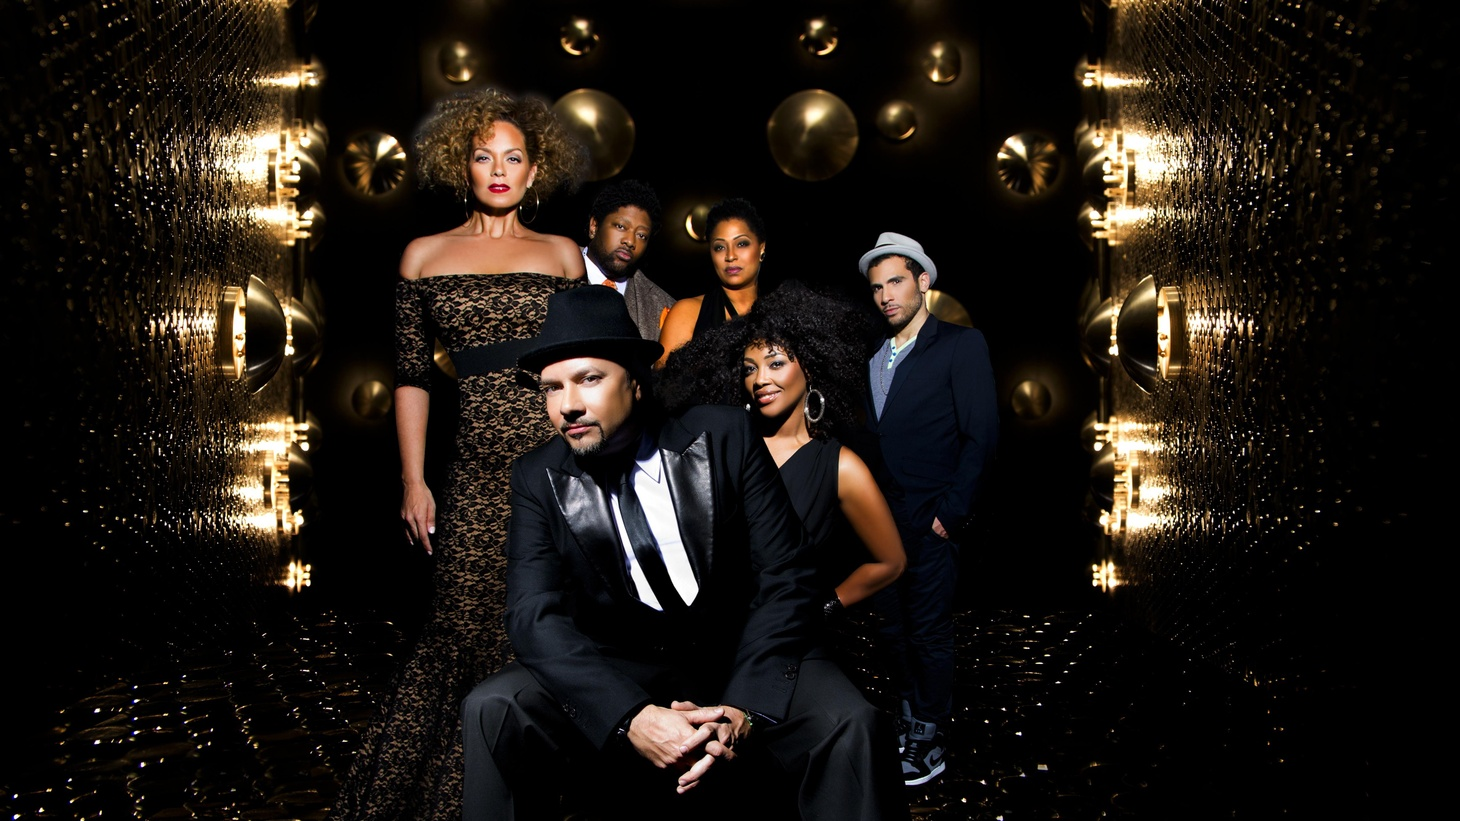 Louie Vega is a Grammy Award-winning producer and DJ. His orchestral project Elements of Life is a cross section of sounds from Afrobeat to Latin to Jazz.